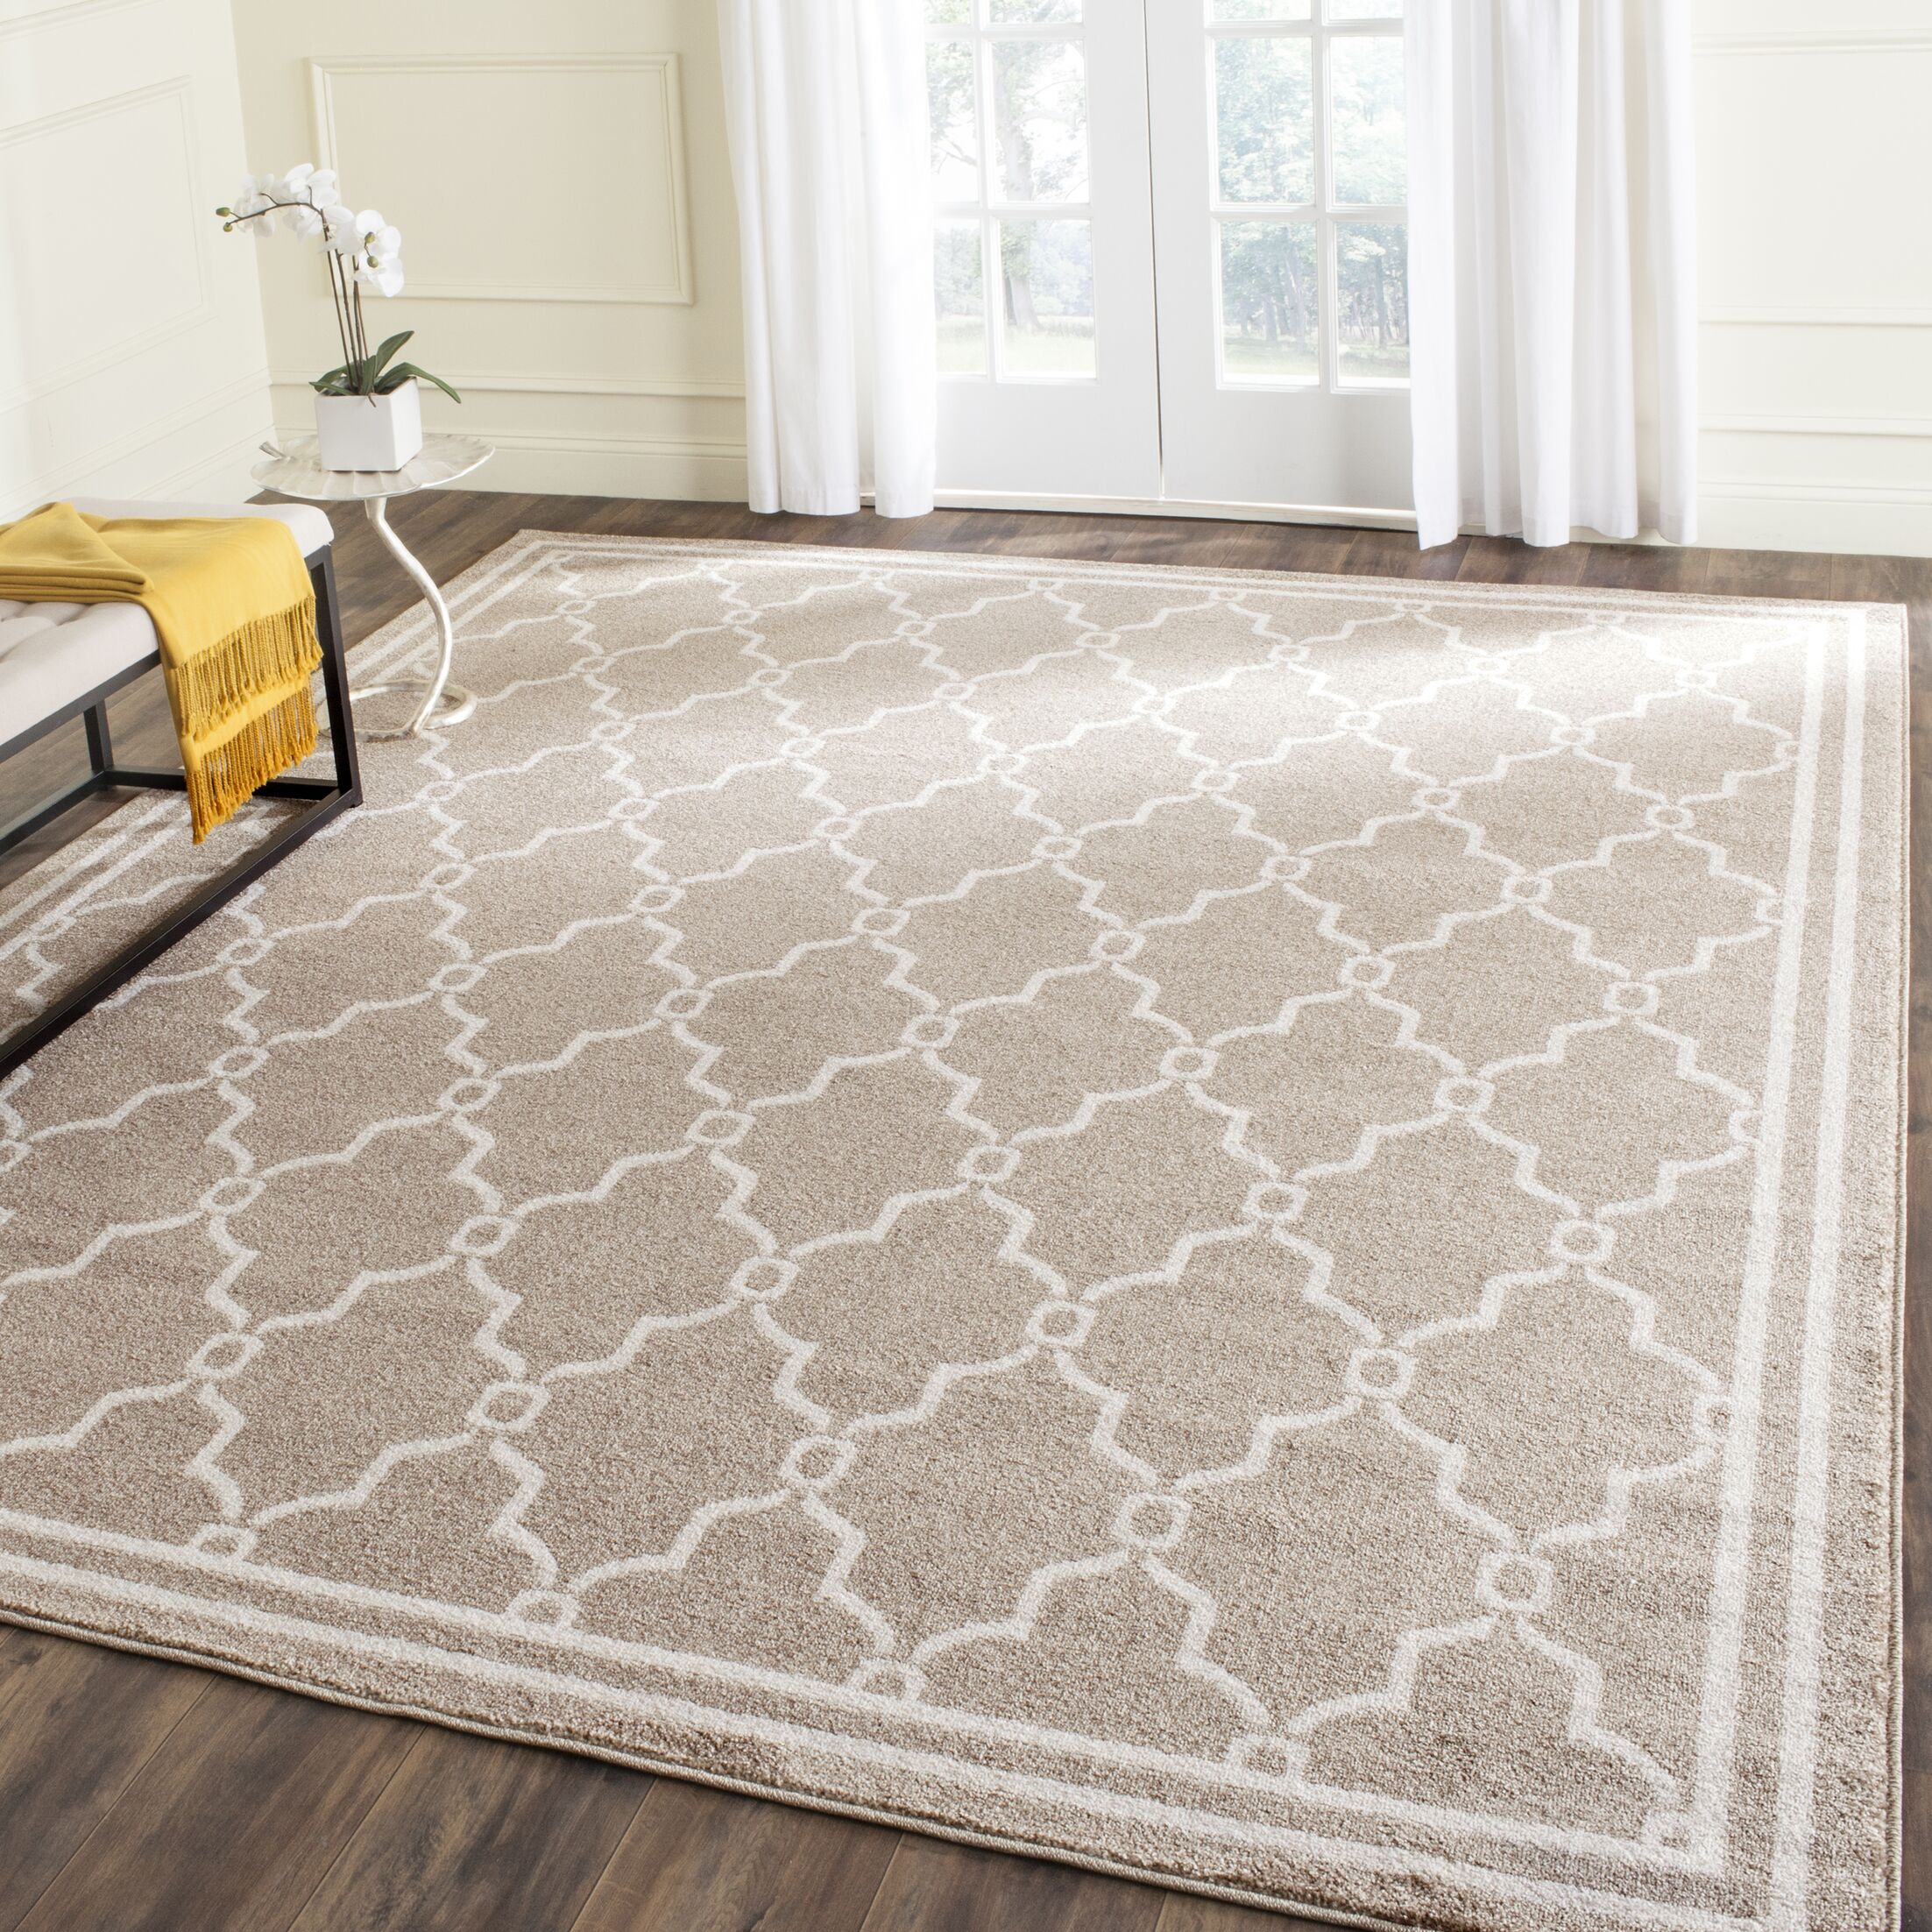 Wason Geometric Wheat/Beige Indoor/Outdoor Area Rug Rug Size: Rectangle 10' x 14'